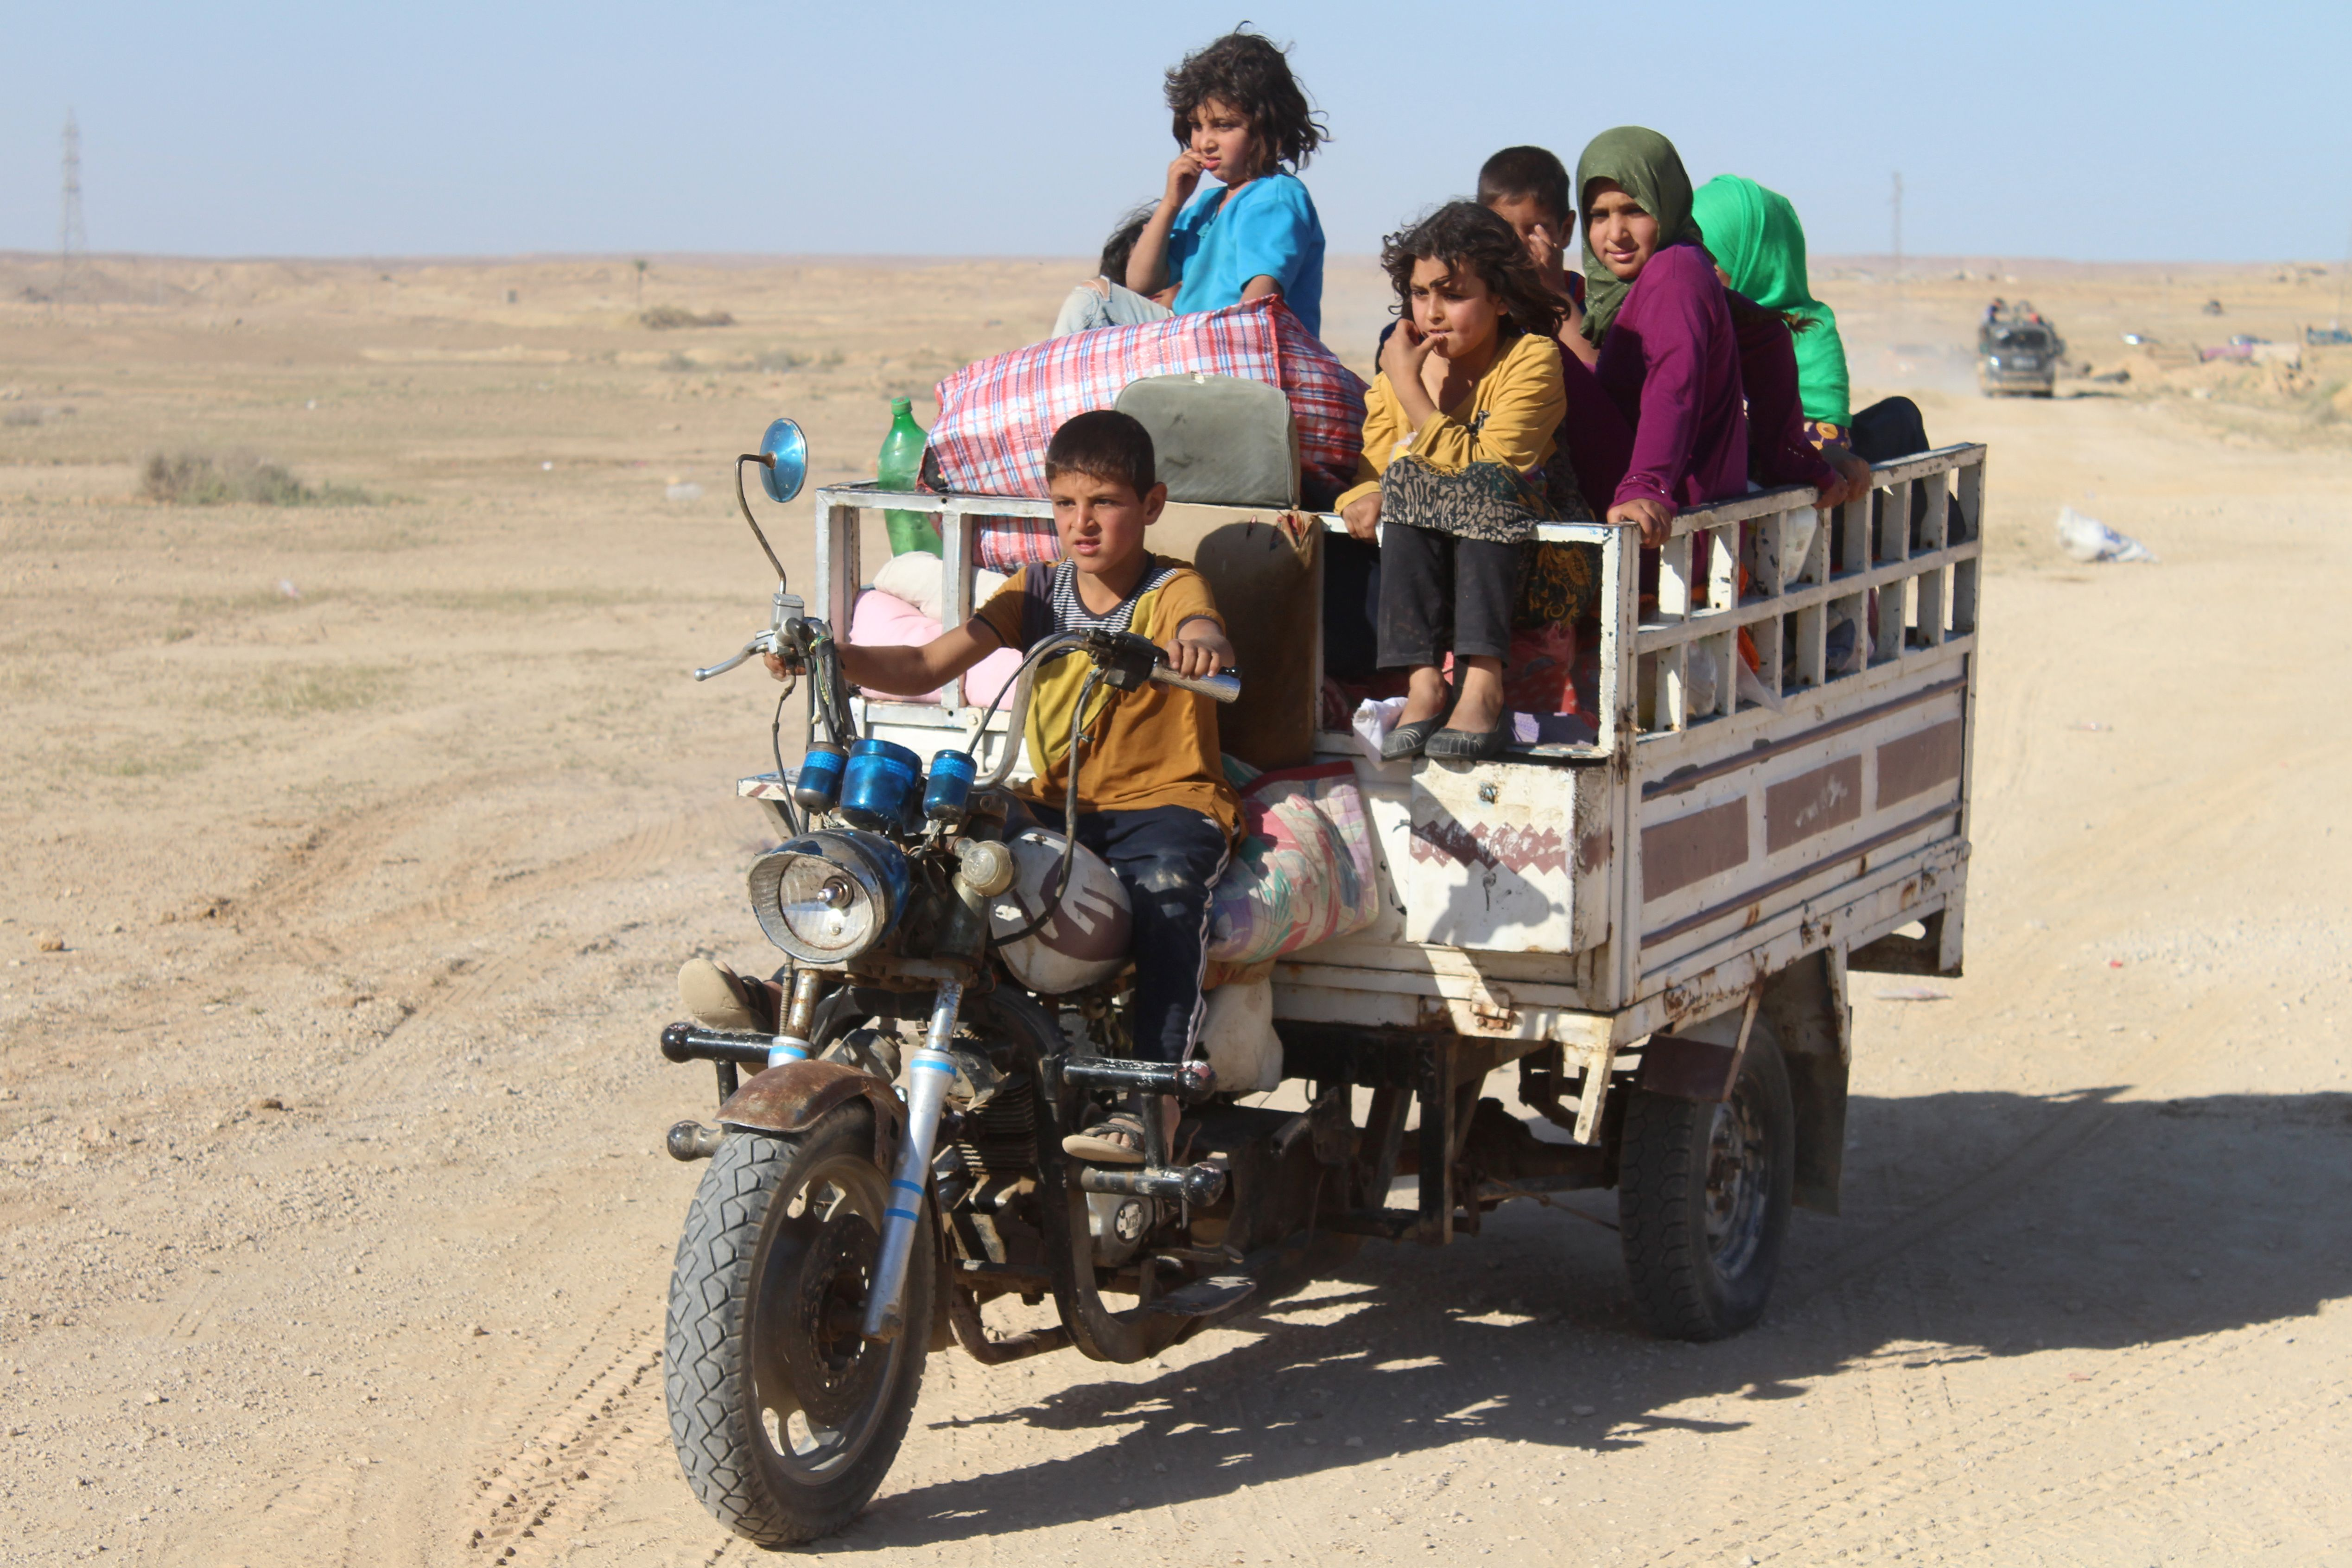 Iraqi children sit in a three-wheel motorcycle near the town of Heet in Iraq's Anbar  province.       (AFP)